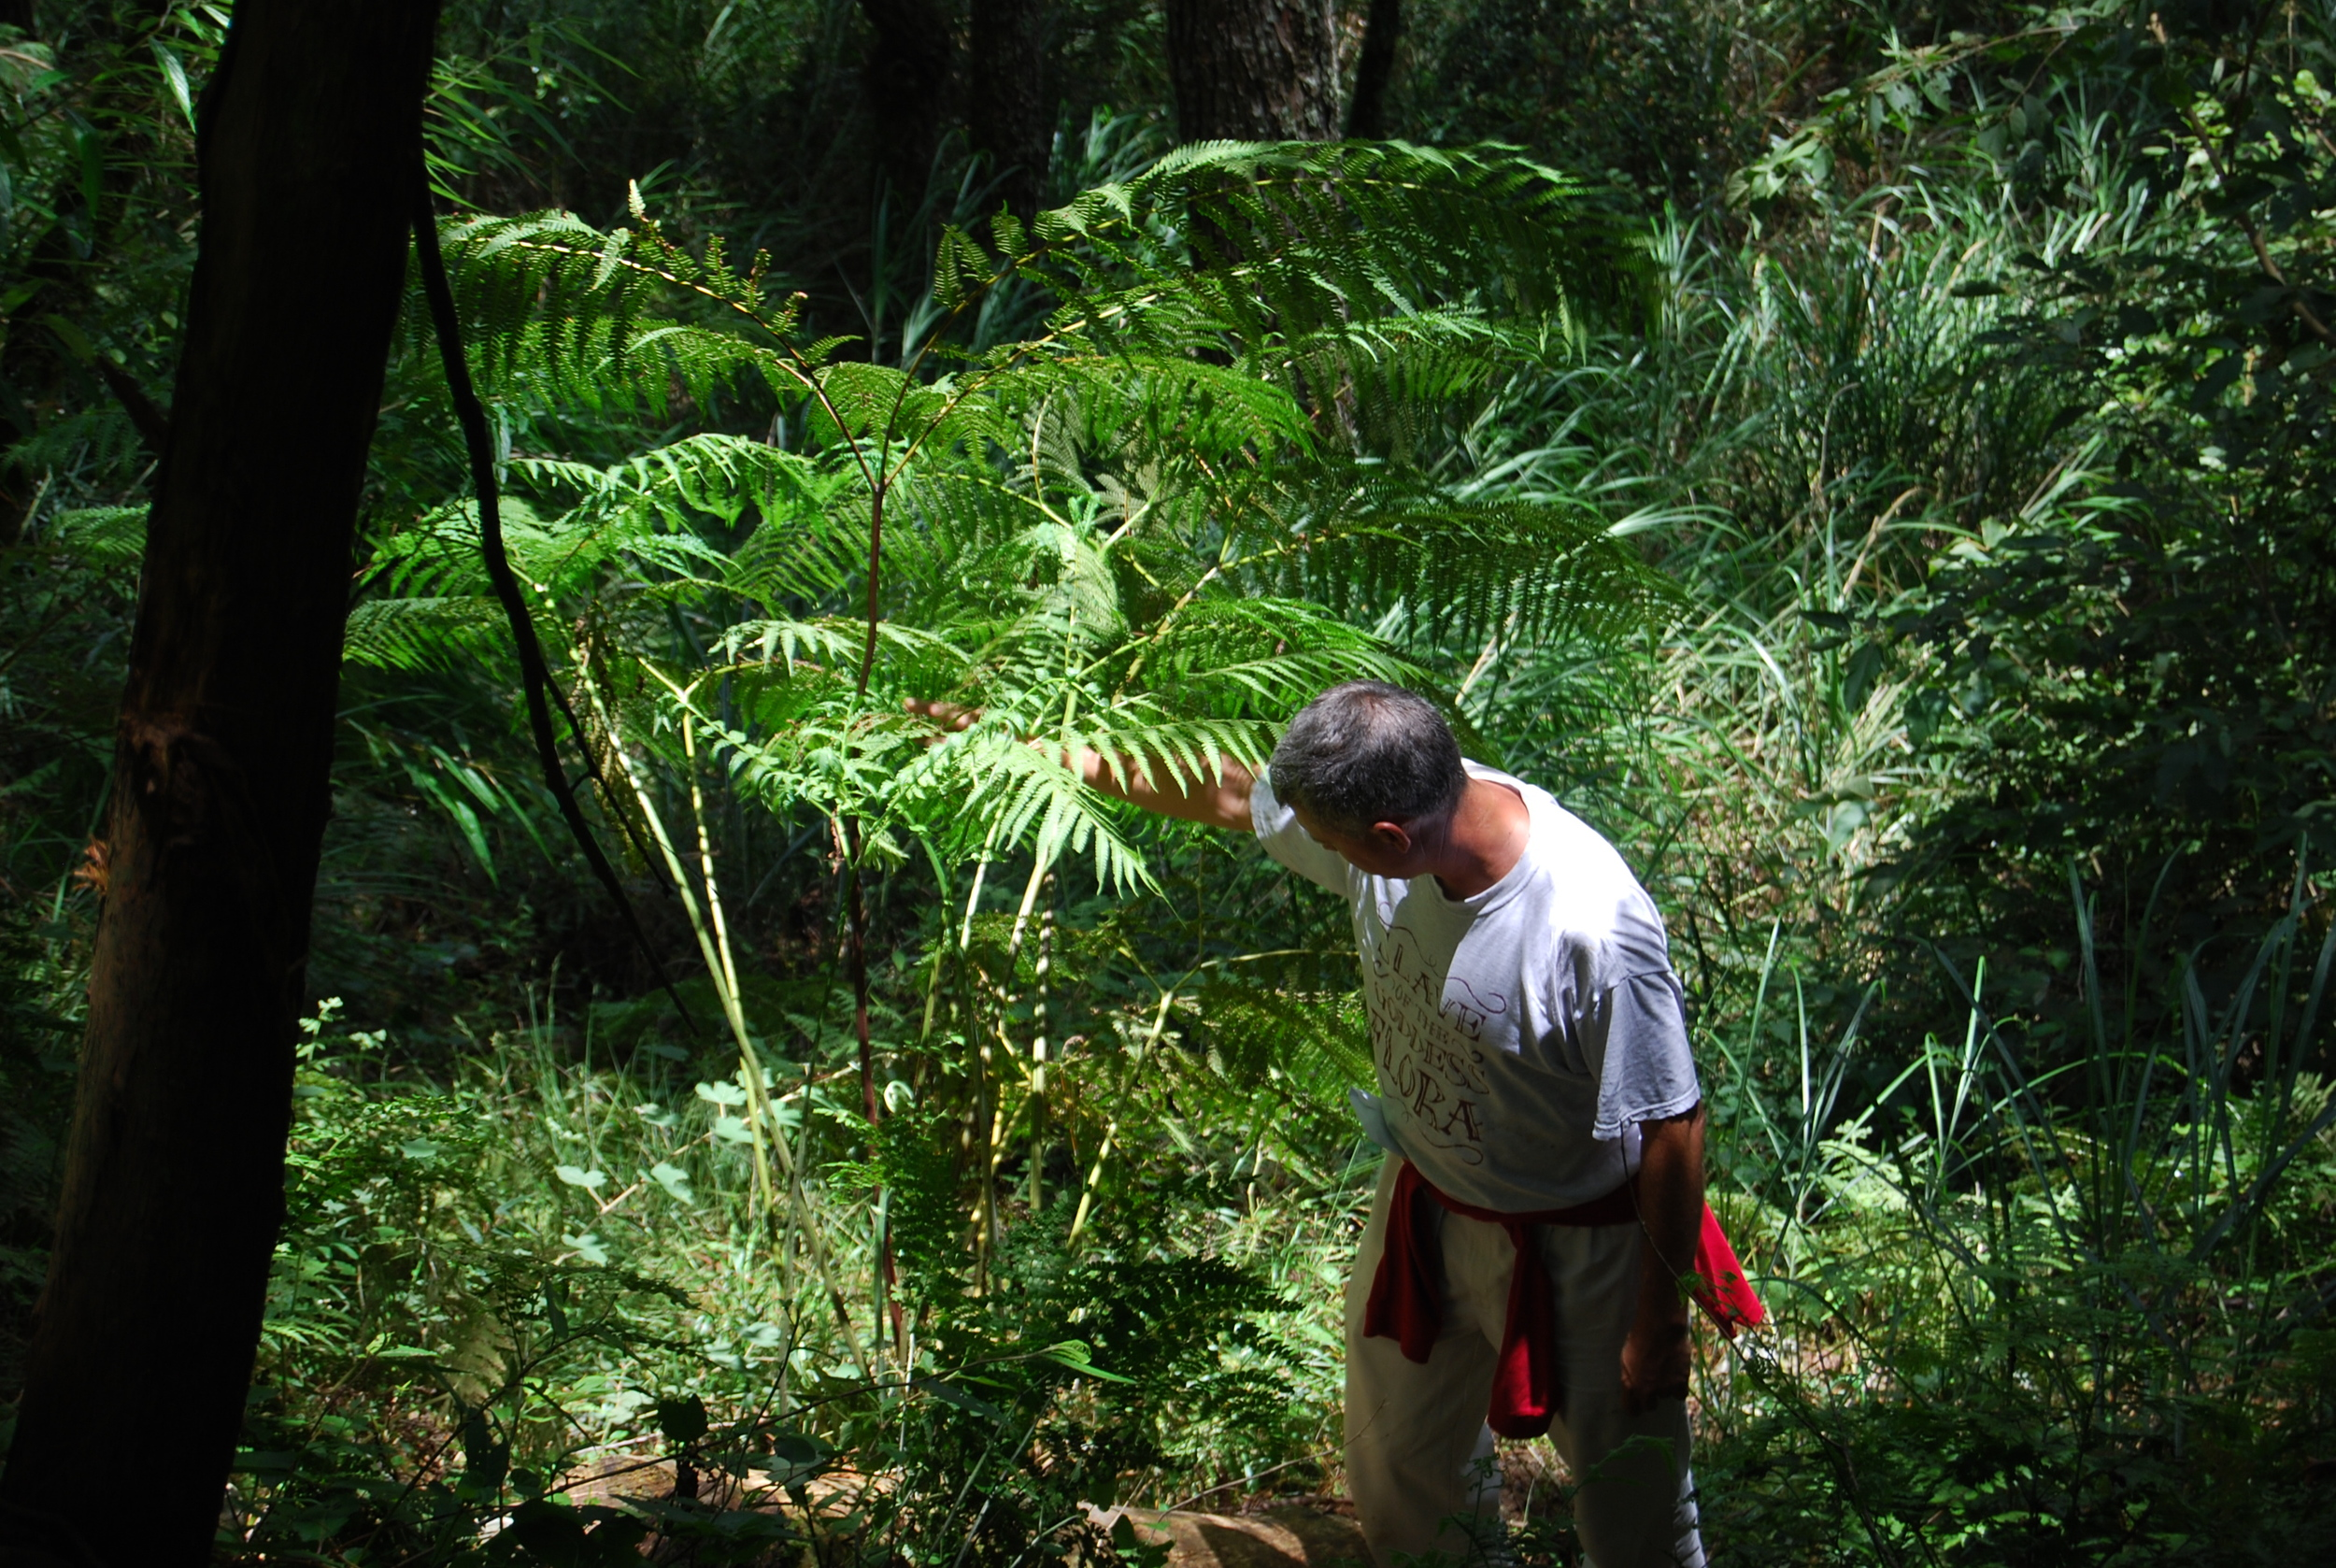 Tony Avent, modestly hiding his tears of joy as he discovers a new (to him) fern with viable spores.